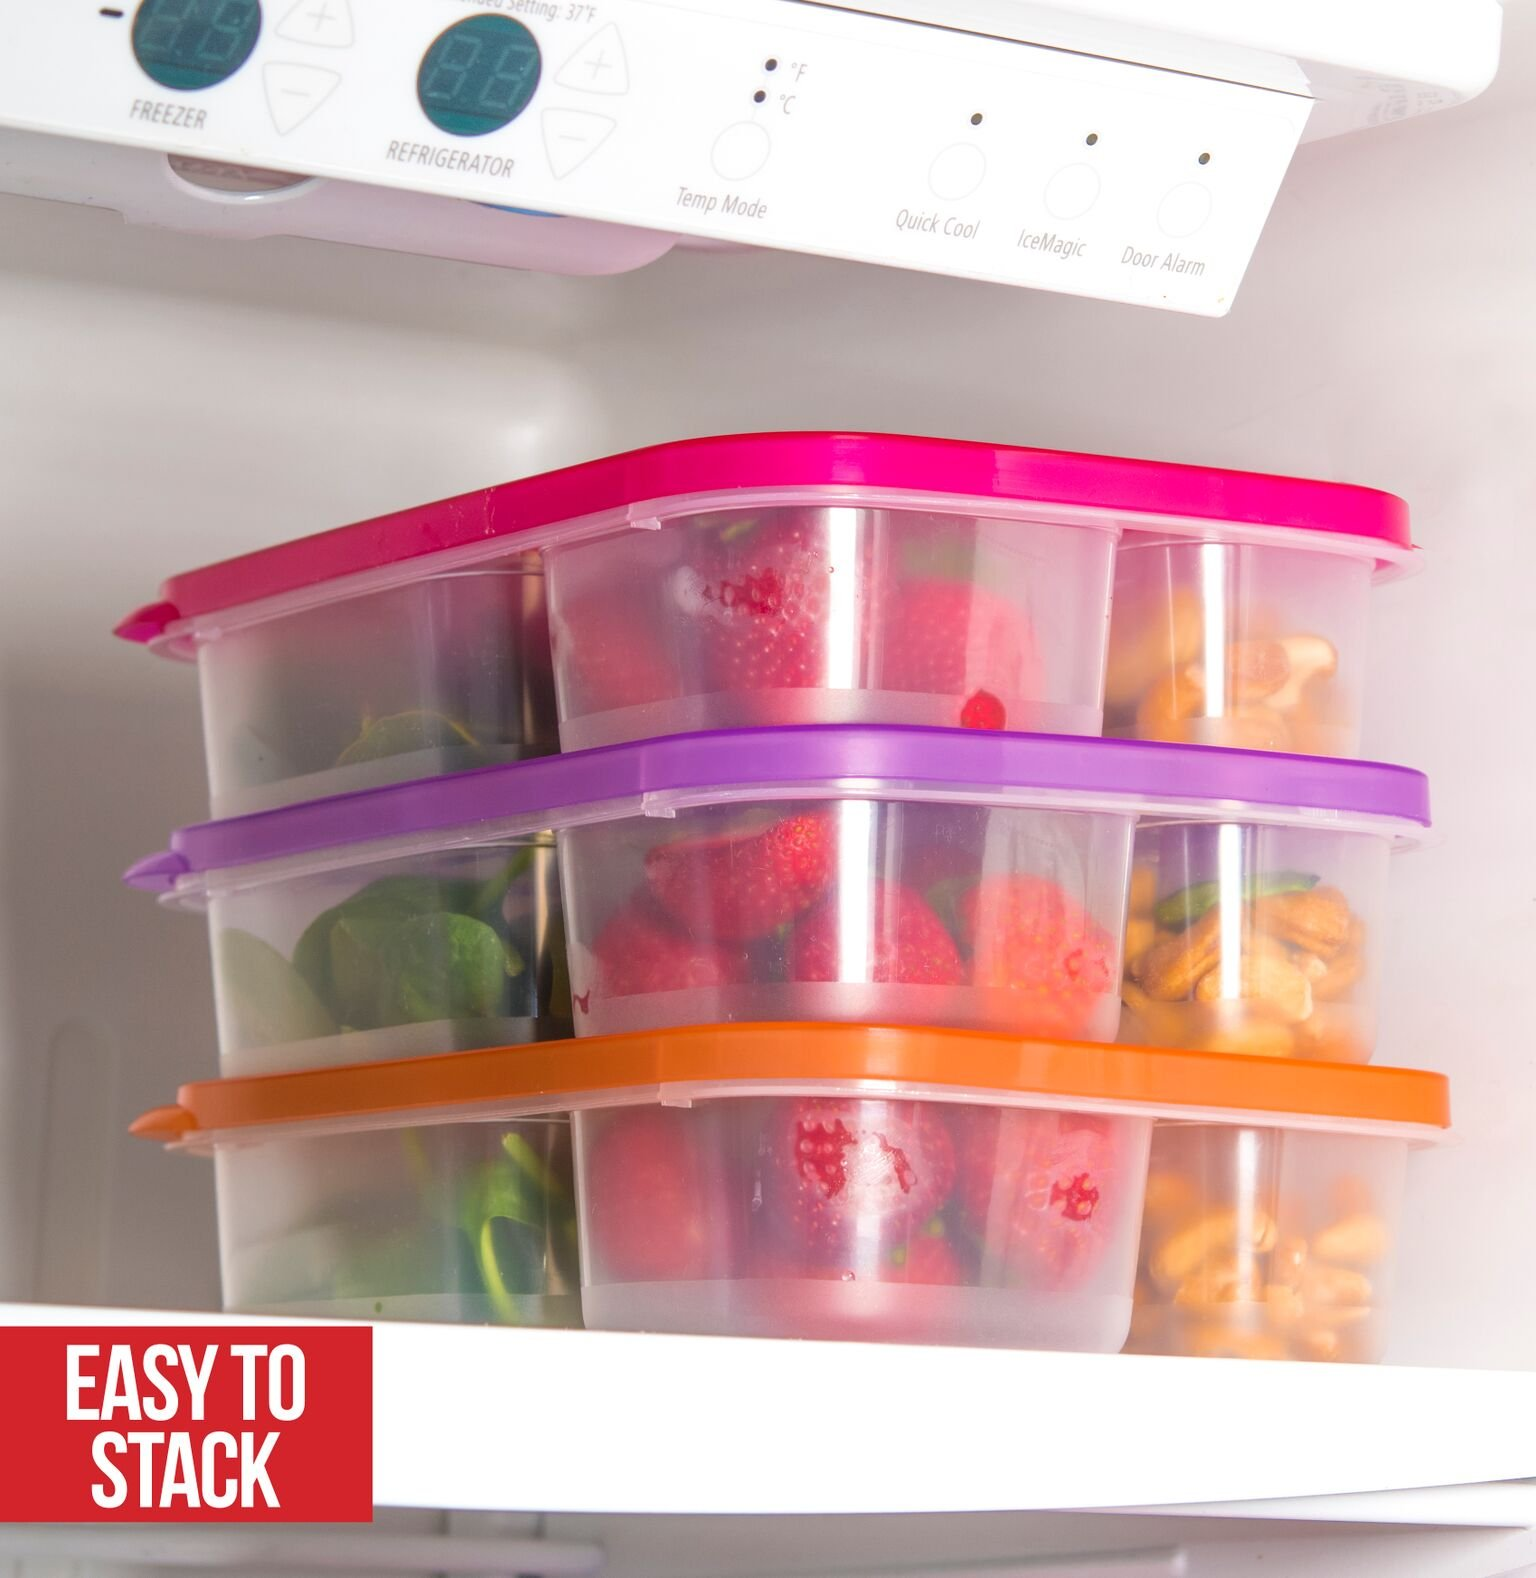 Bento Lunch Box 3 Compartment Food Containers – Set of 10 Storage meal prep Container Boxes– Ideal for Adults, Toddler, Kids, Girls, and Boys – Free 2-in-1 Fork/Spoon & Puzzle Sandwich Cutter by Perfect Fit (Image #3)